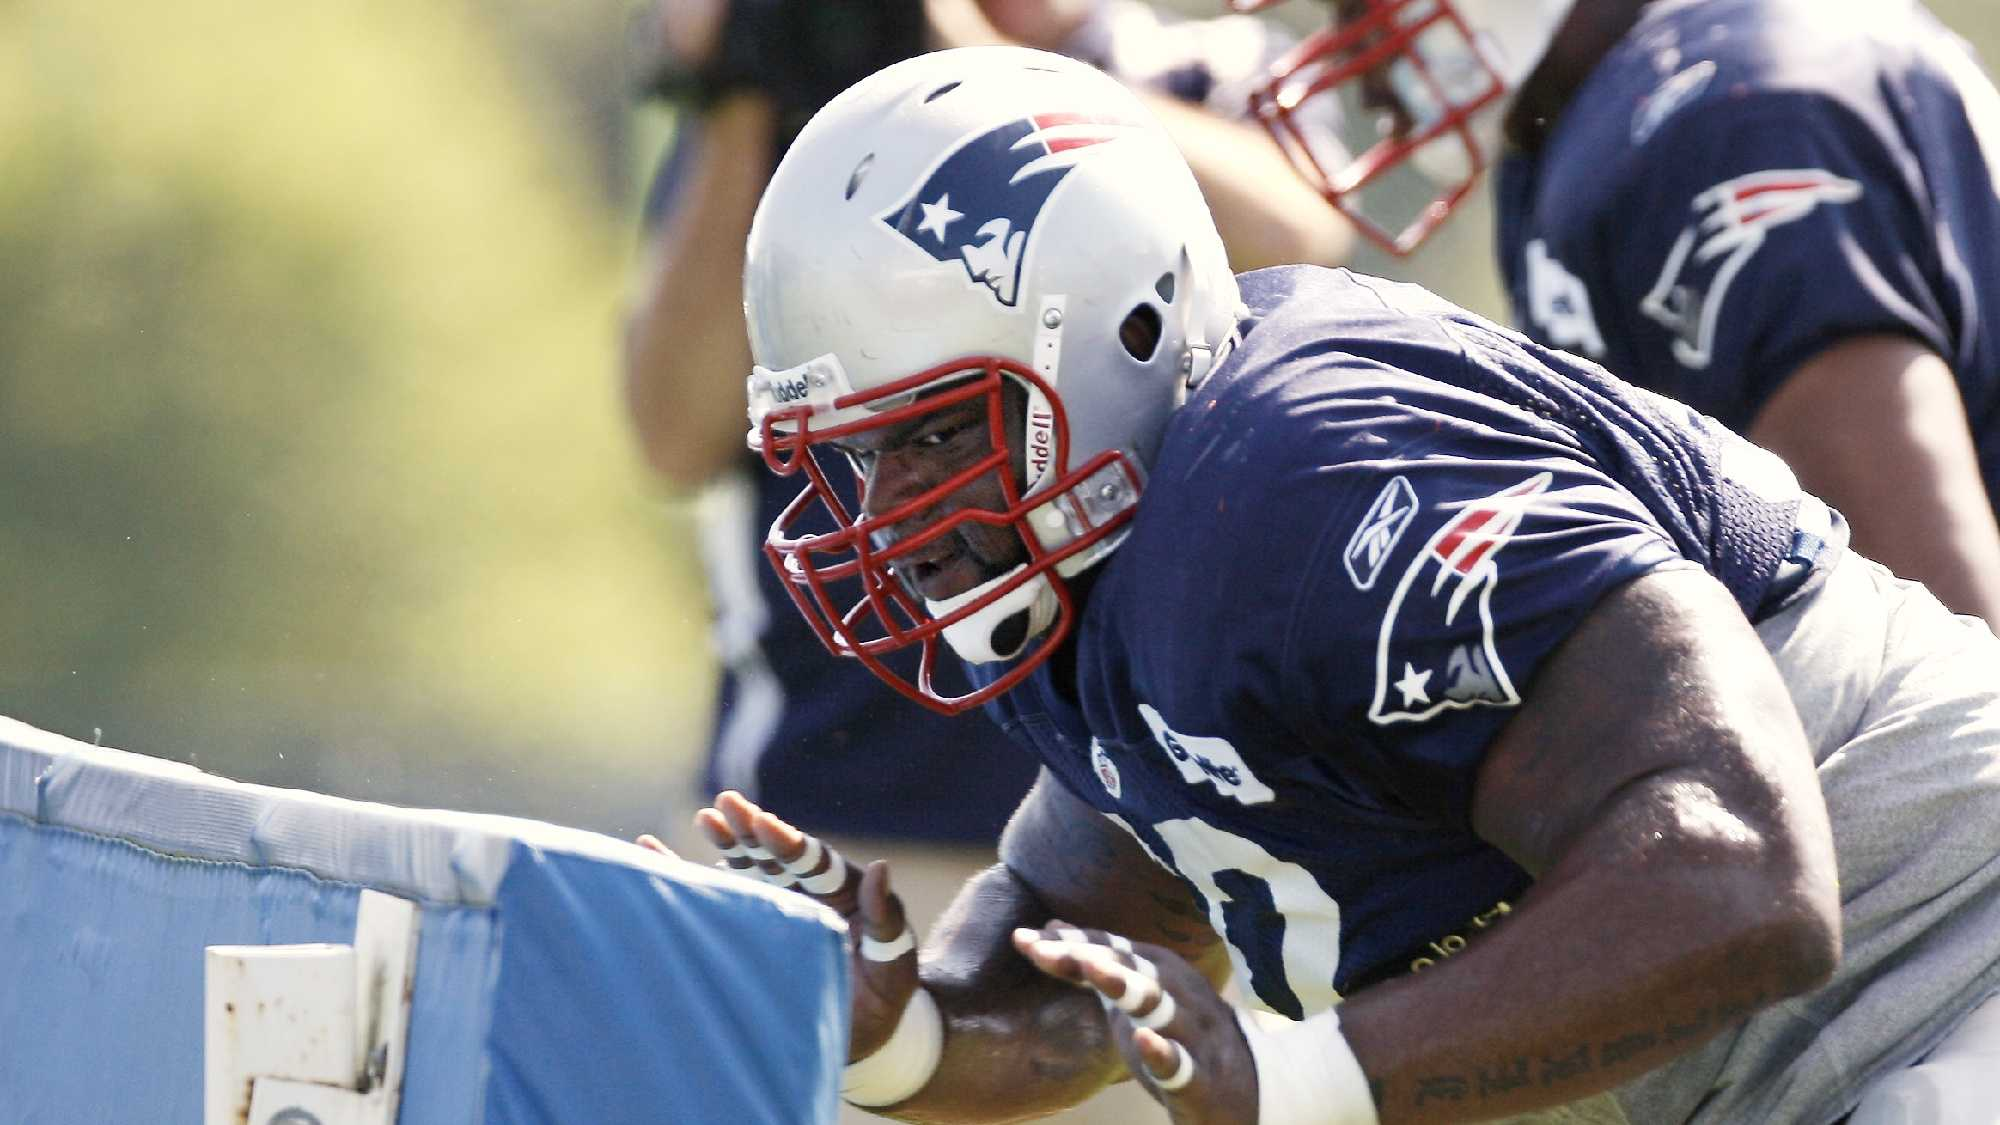 FILE - New England Patriots rookie defensive lineman Ron Brace takes on the blocking sled during NFL football training camp at Gillette Stadium in Foxborough, Mass. Saturday, Aug. 1, 2009.